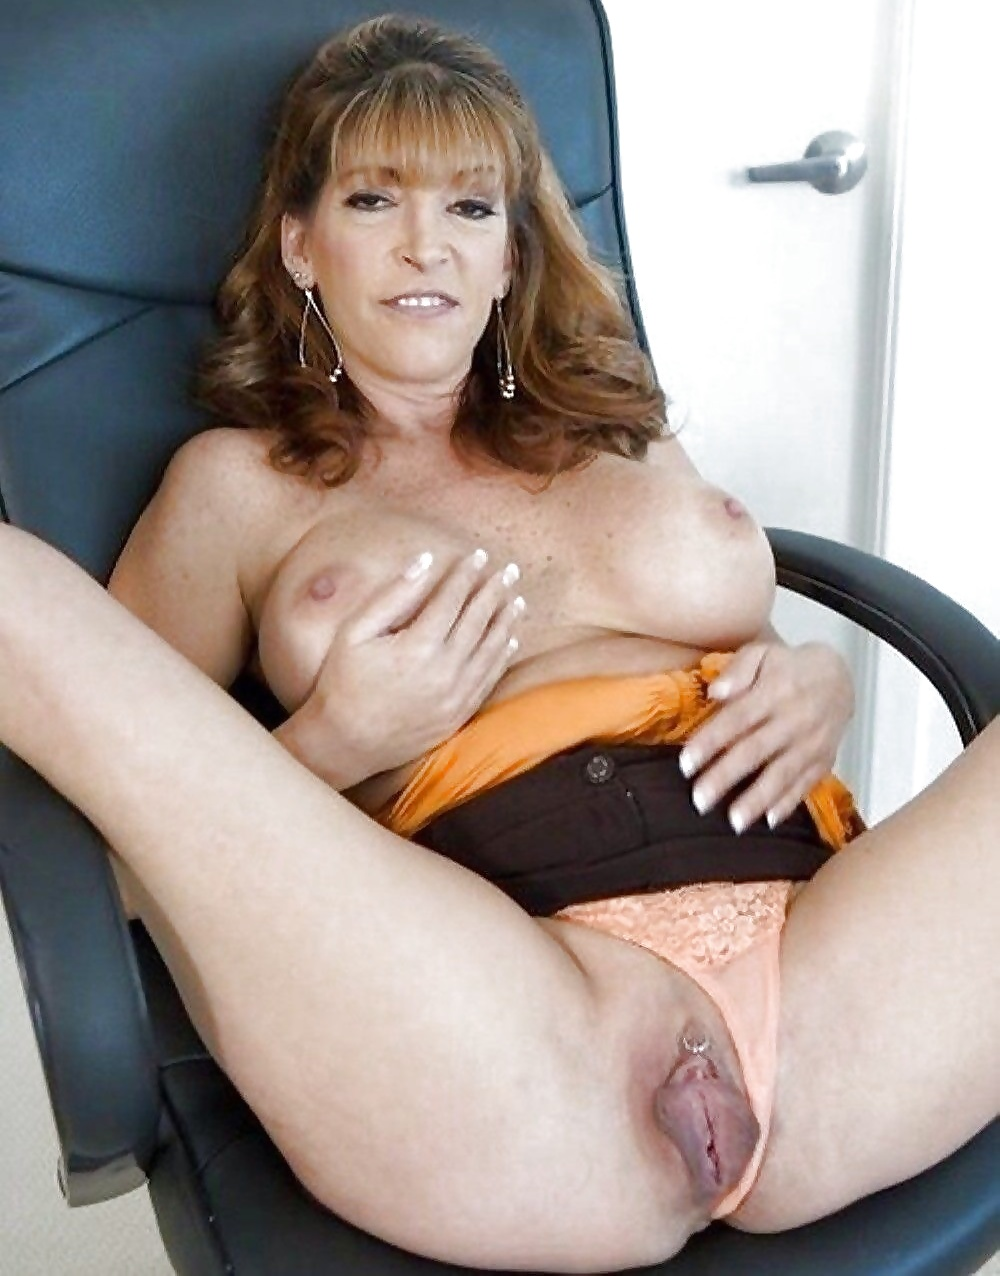 Japanese mature woman dirty hairy muff photos leaked